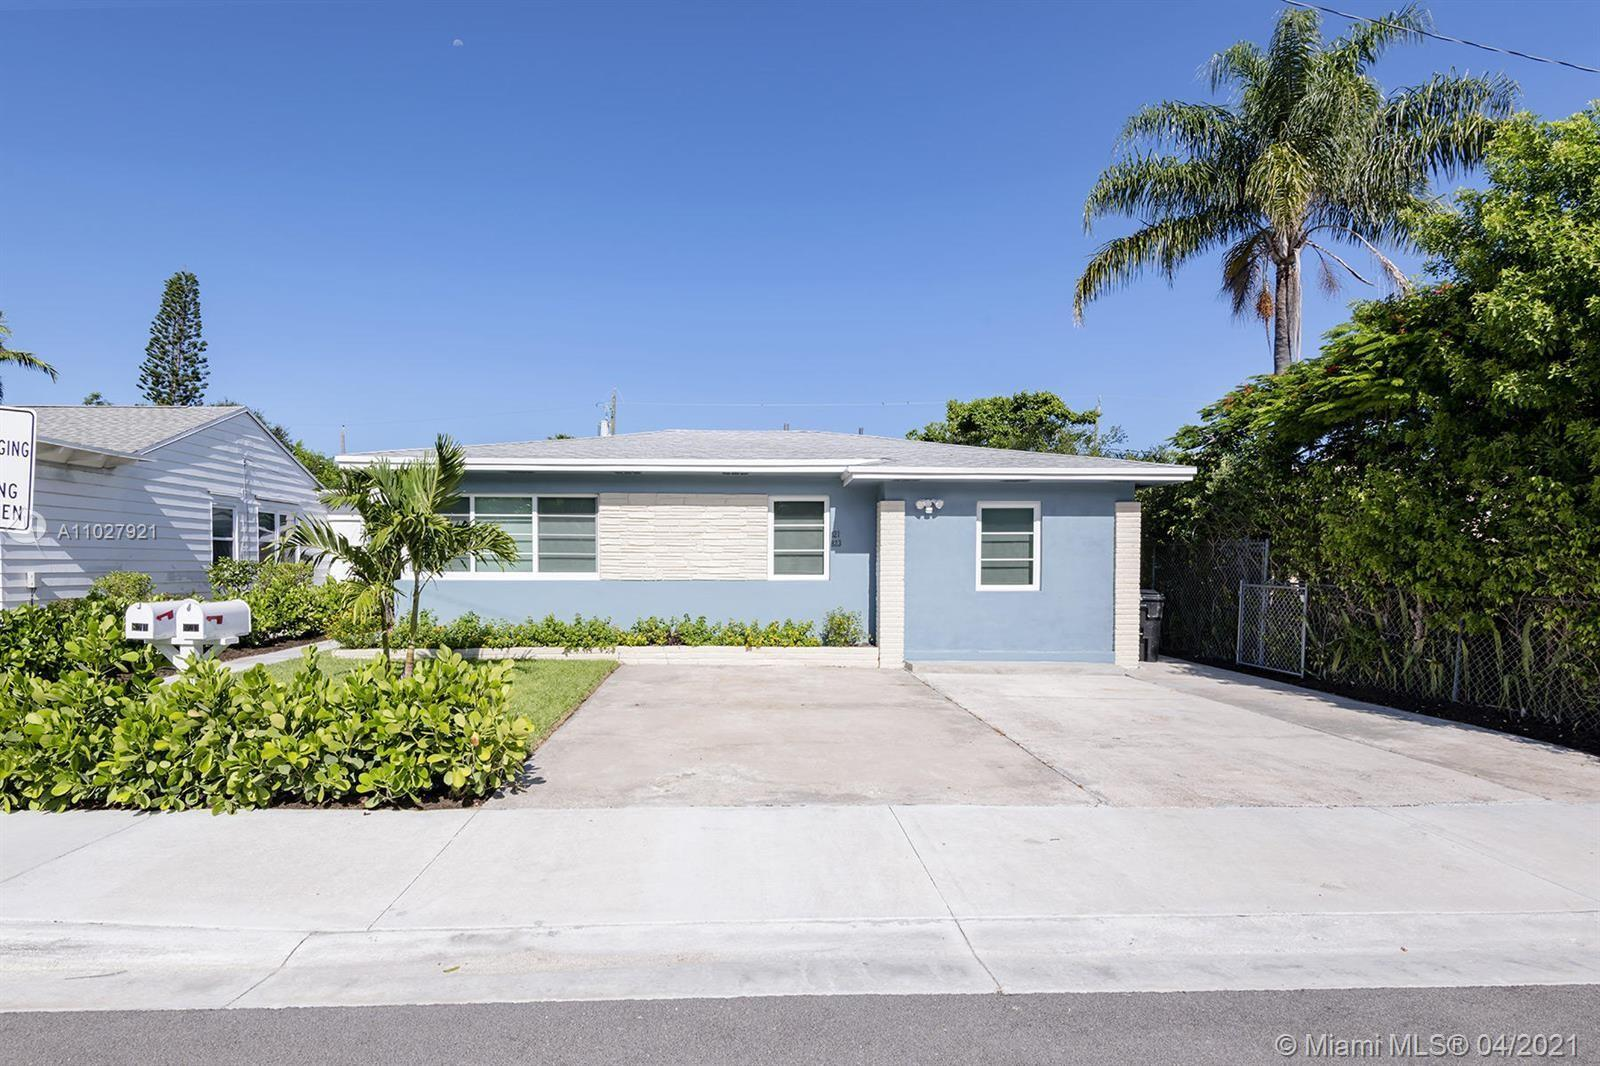 Fantastic opportunity for DUPLEX property in prime location in Lake Worth Beach! Fully Updated duple